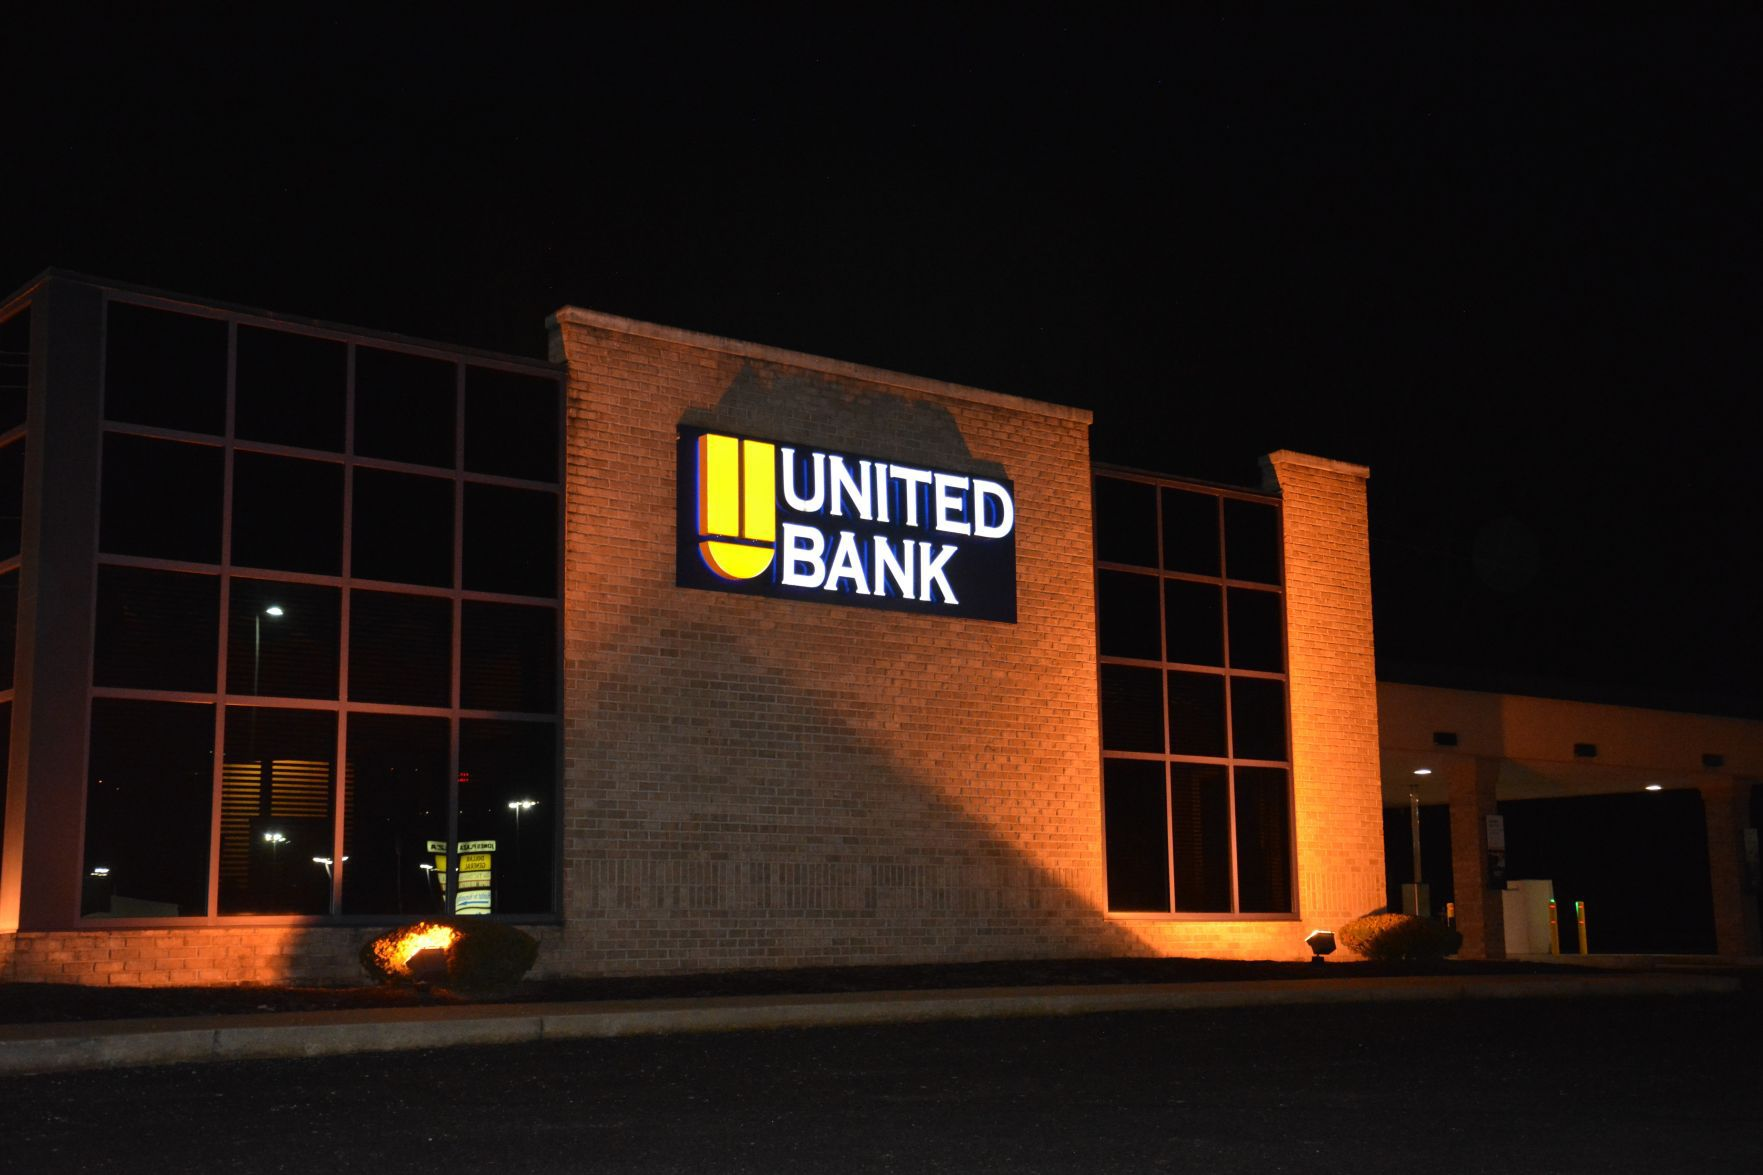 employee resignation letter template%0A United Bank